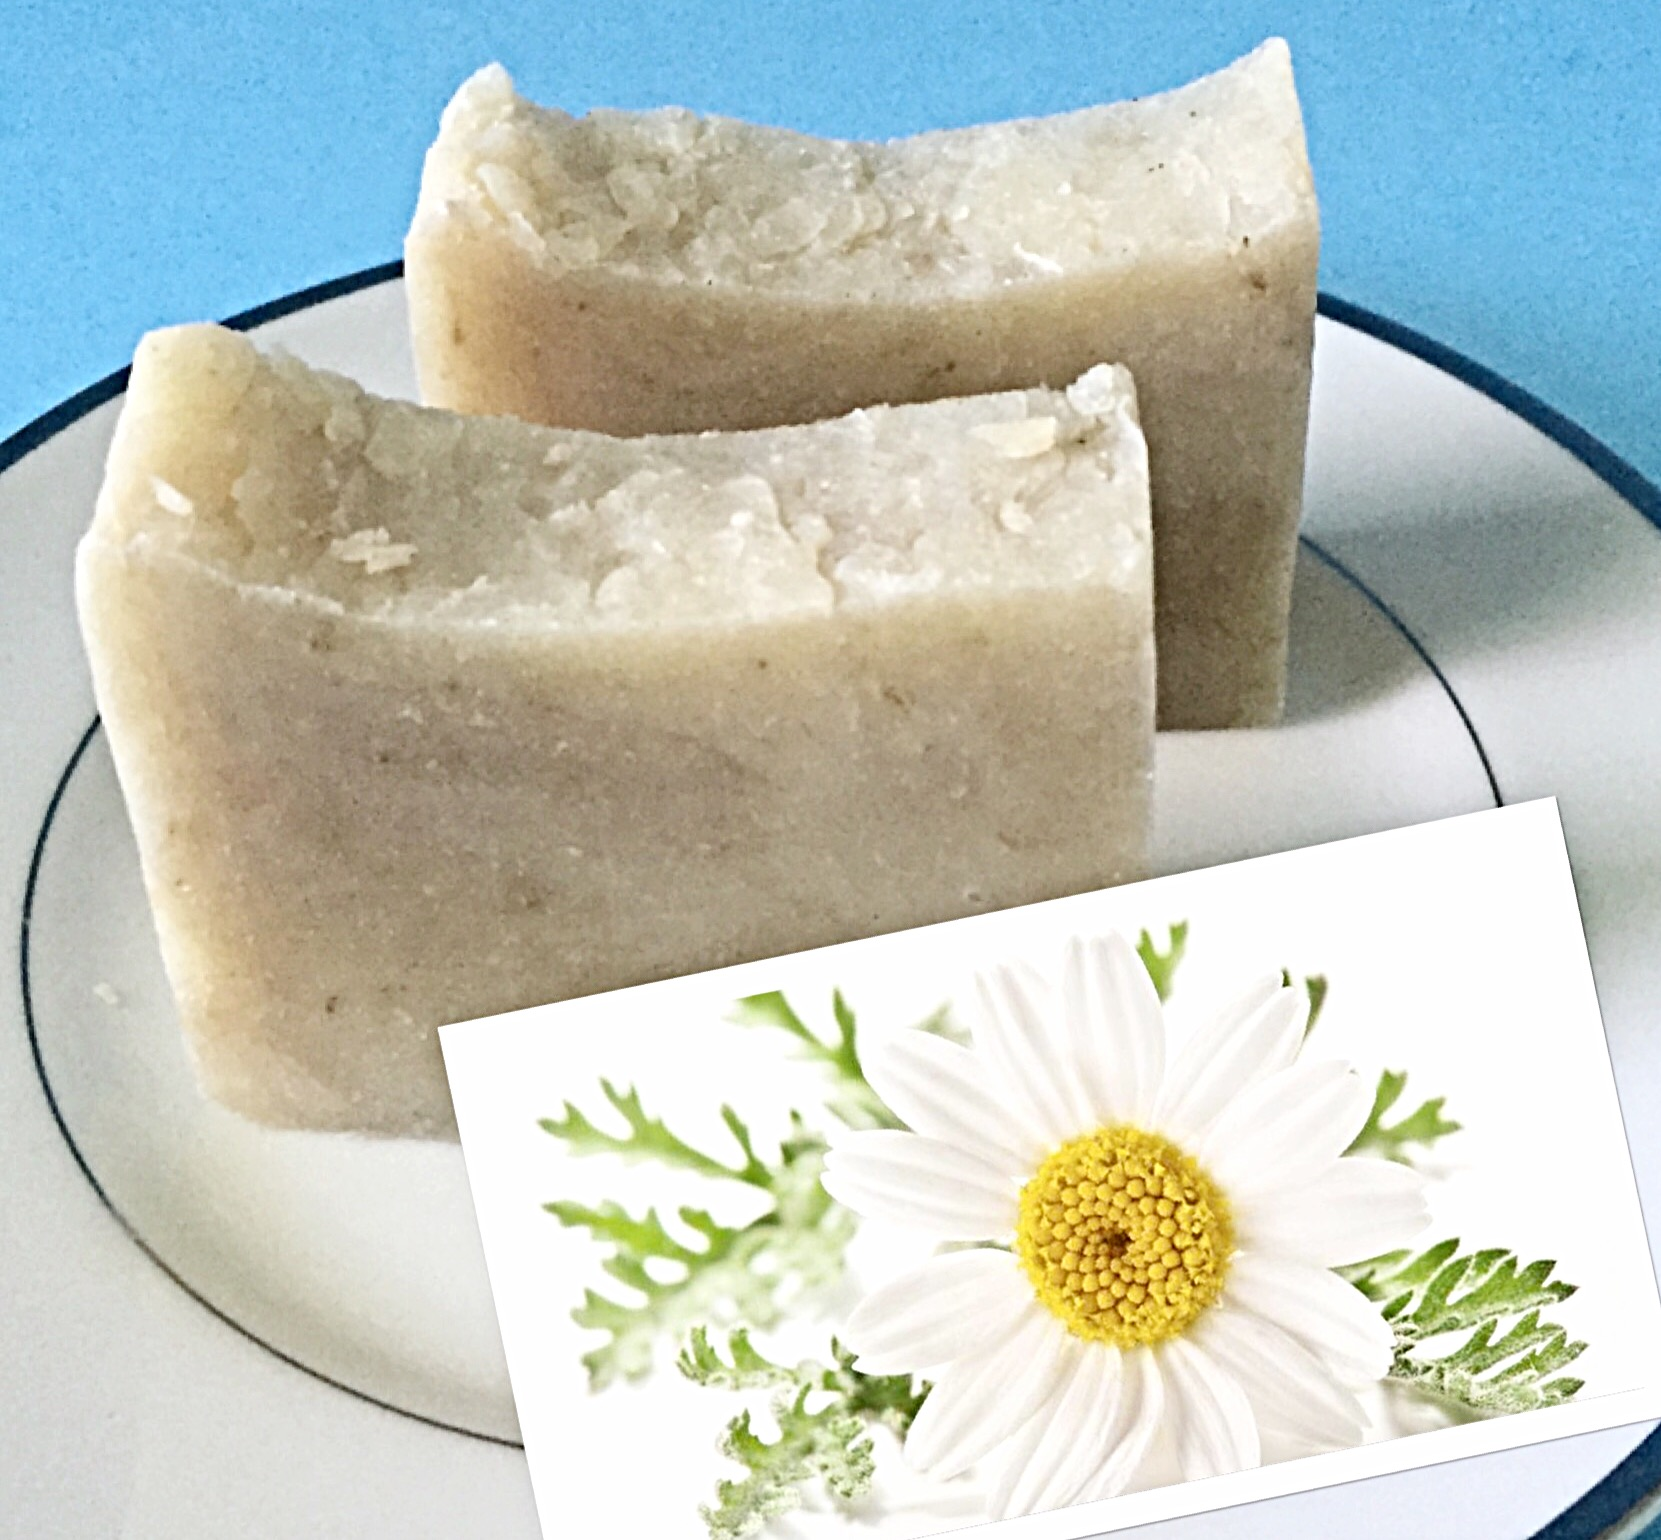 CHAMOMILE NEROLI NATURAL HOMEMADE SOAP BAR